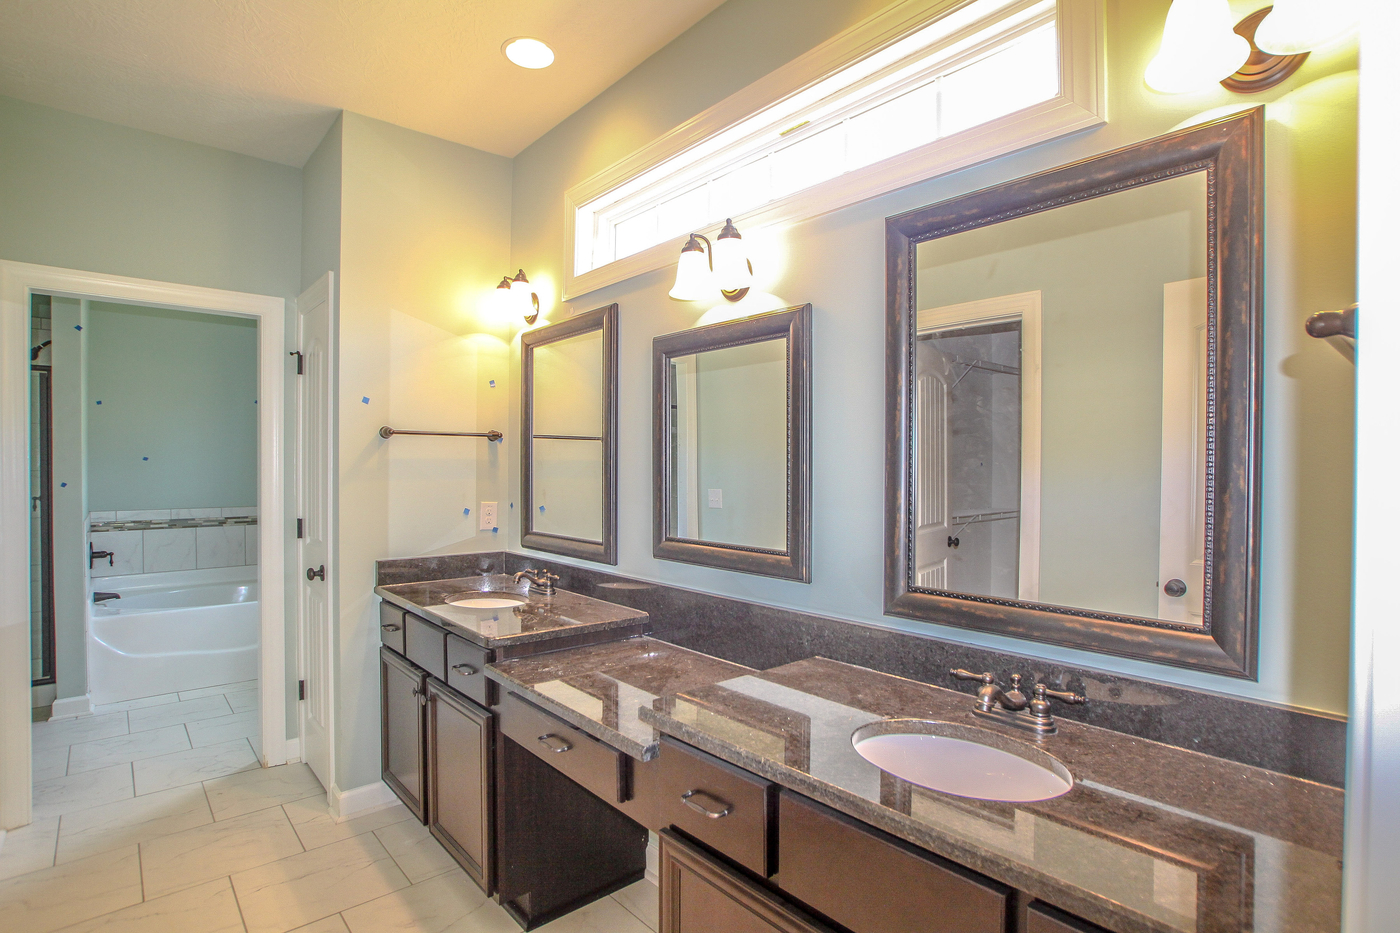 An image of a master bathroom with his and her sinks.